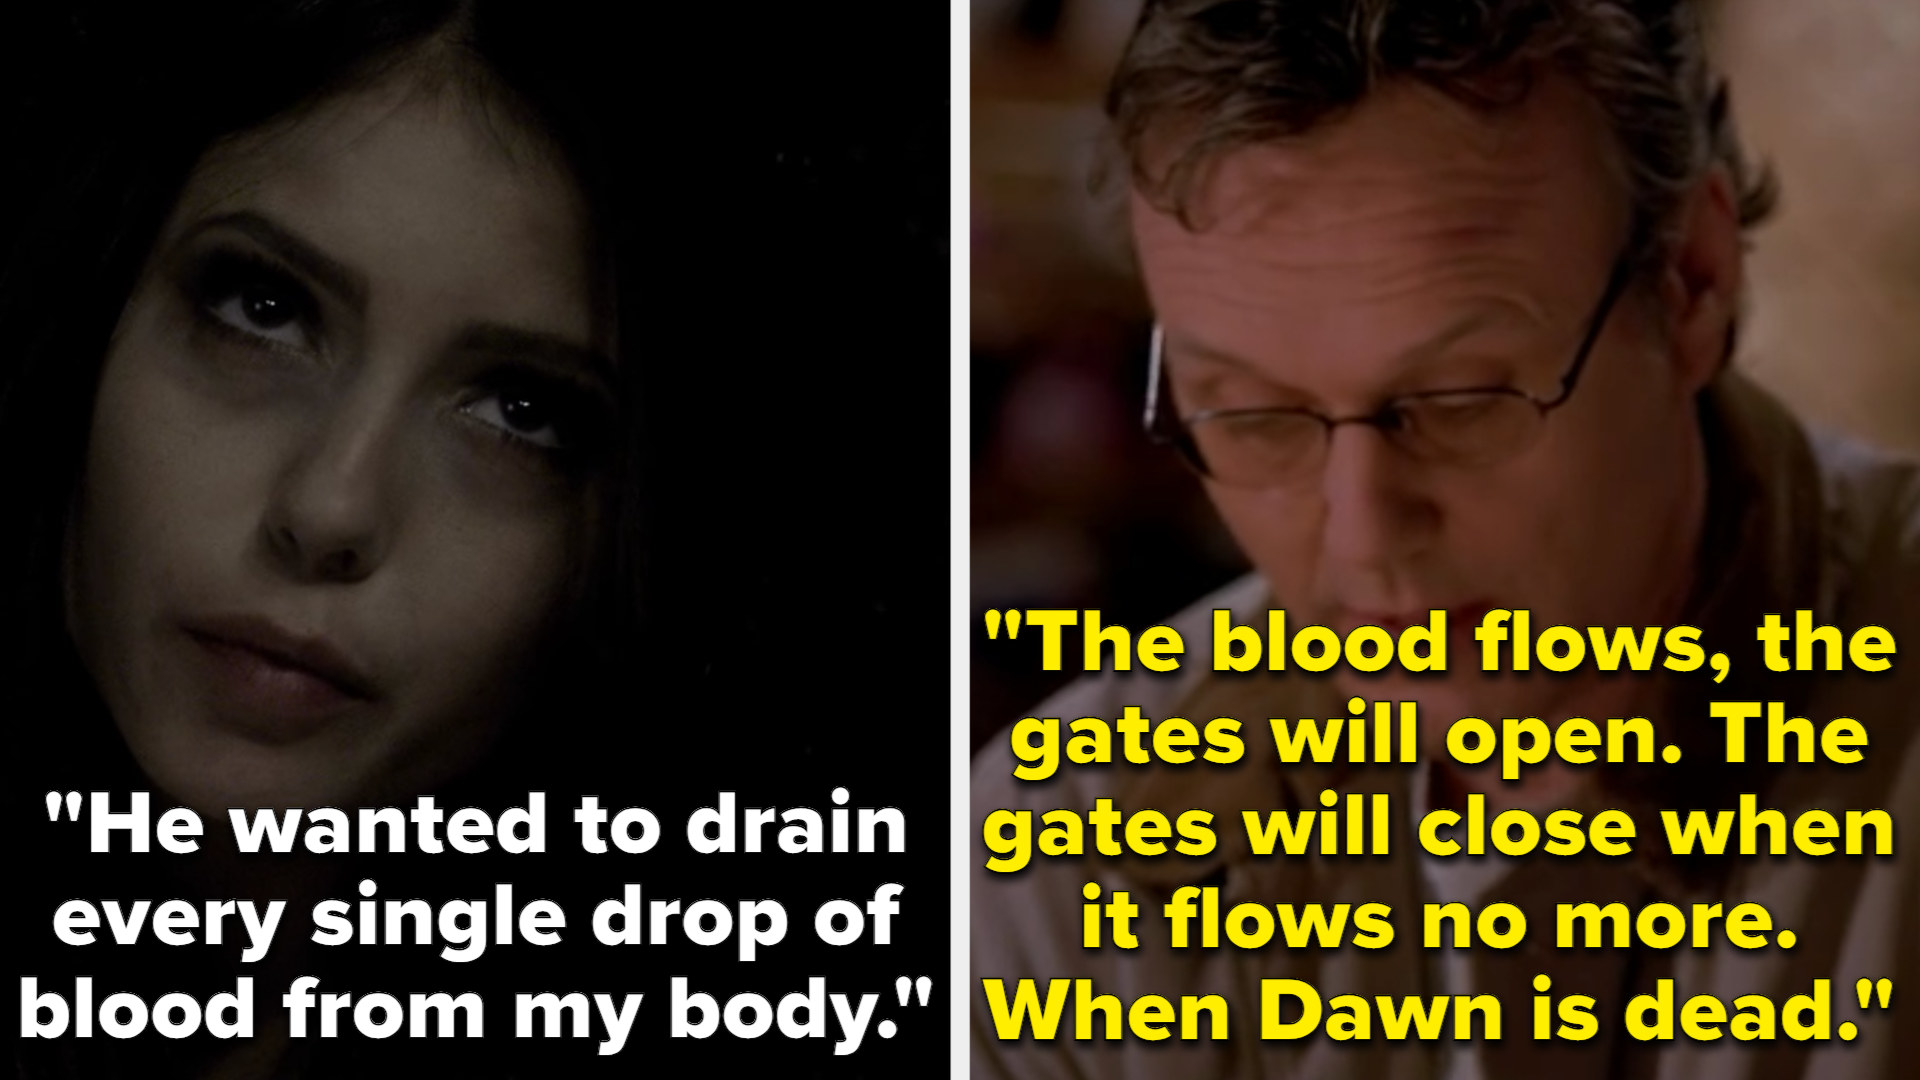 Katherine says that Klaus wants to drain Elena's blood as he wanted to do to her, and Giles says that the gates won't close until Dawn's blood stops flowing